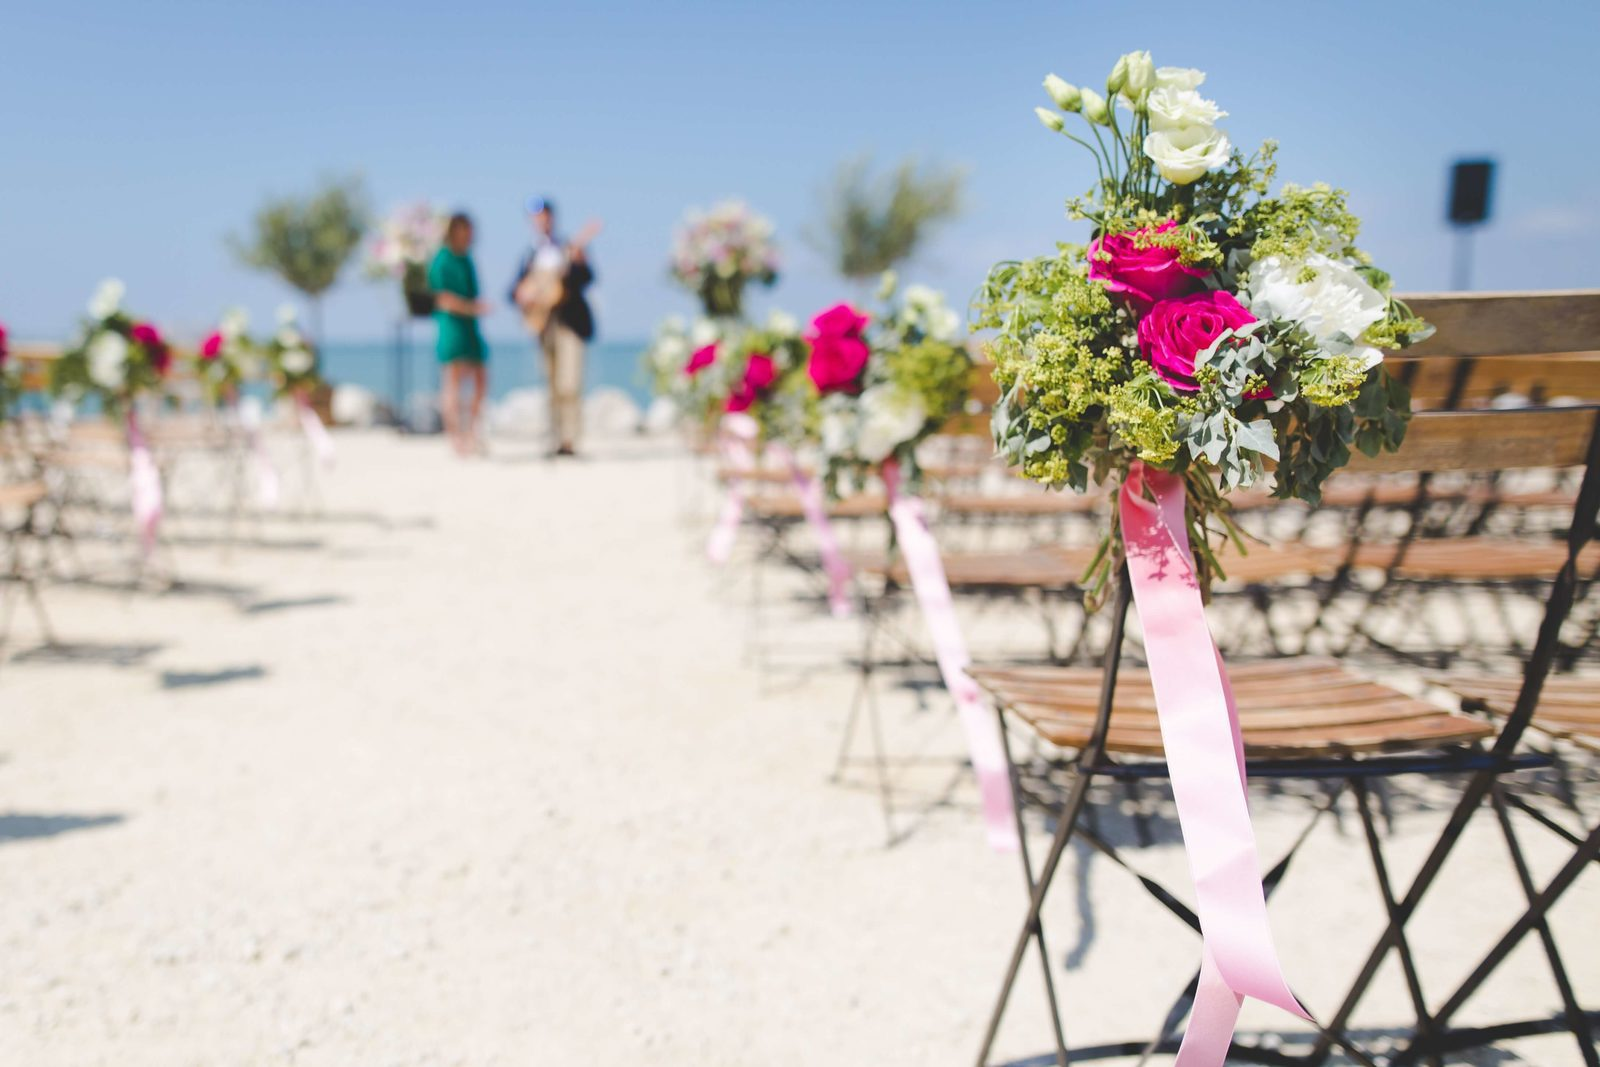 A Bonaire wedding; who doesn't want to marry at a great place like this? Declare your love at the beach and dance with your partner!